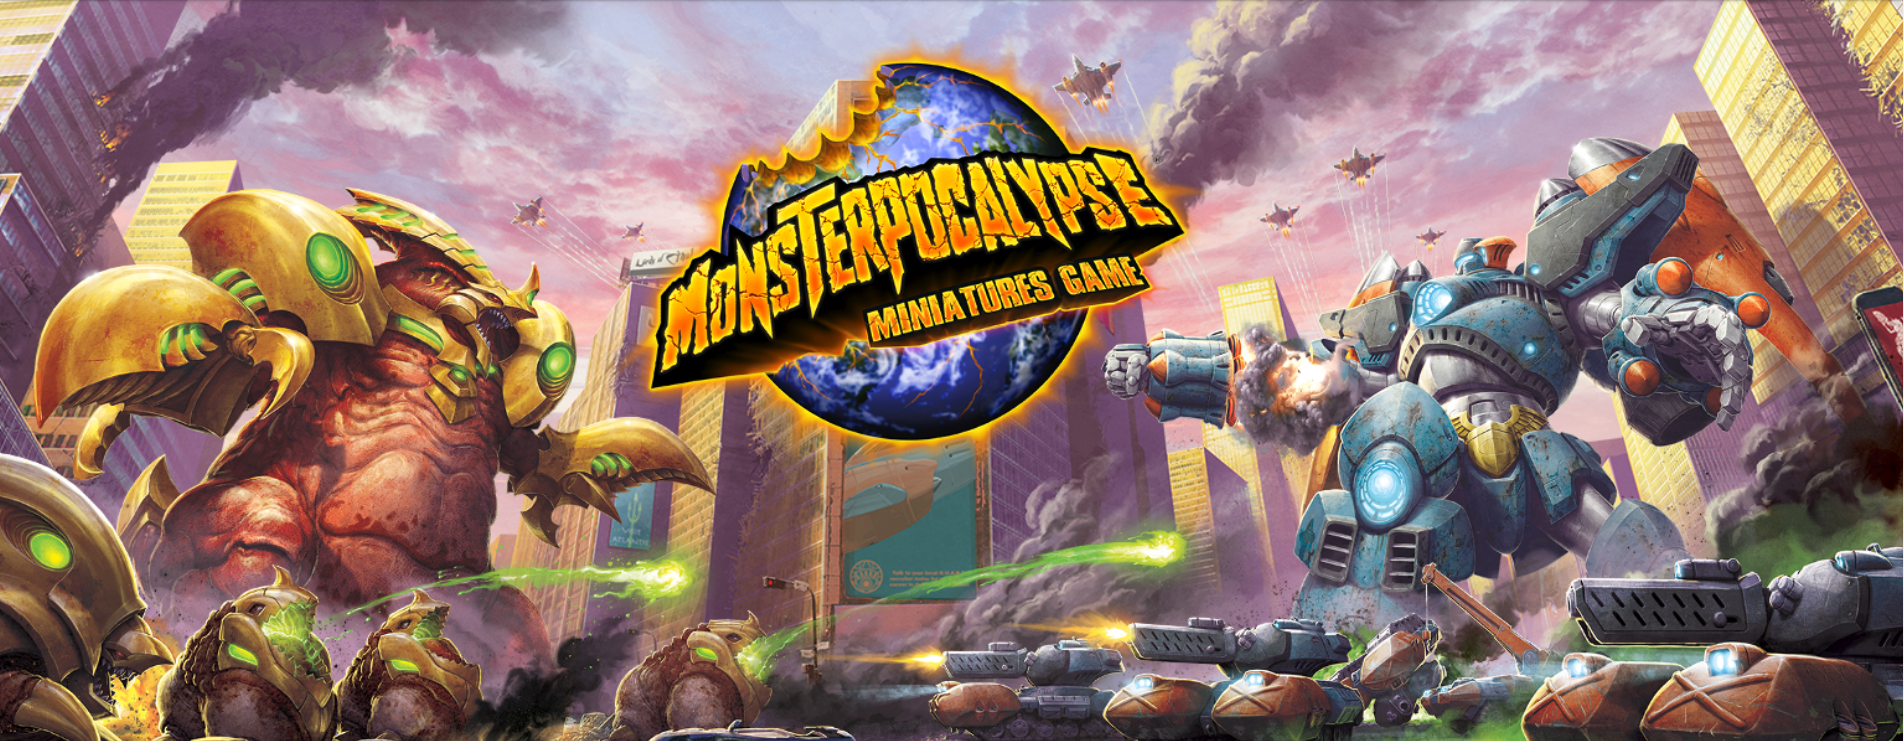 monsterpocalypse.png